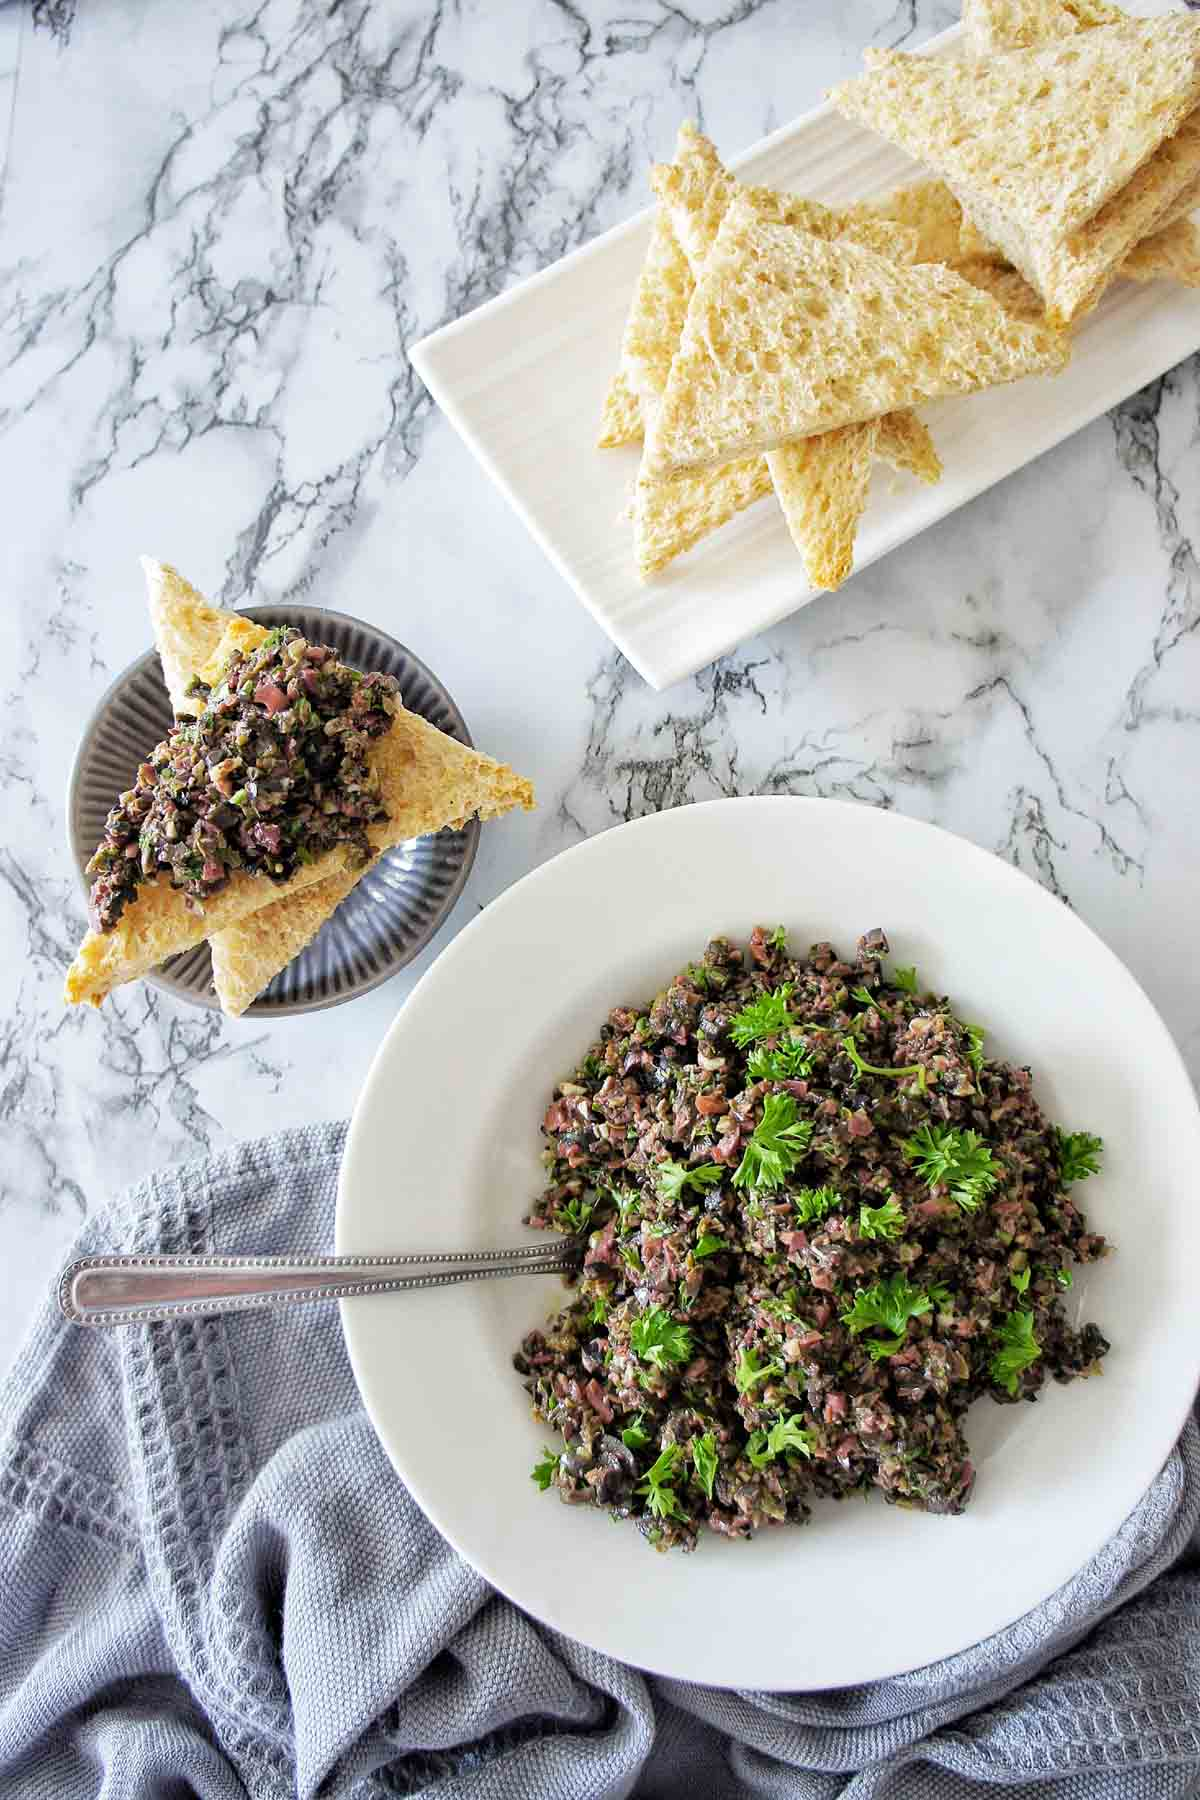 Black Olive Tapenade on toast points with a bowl of tapenade to the right